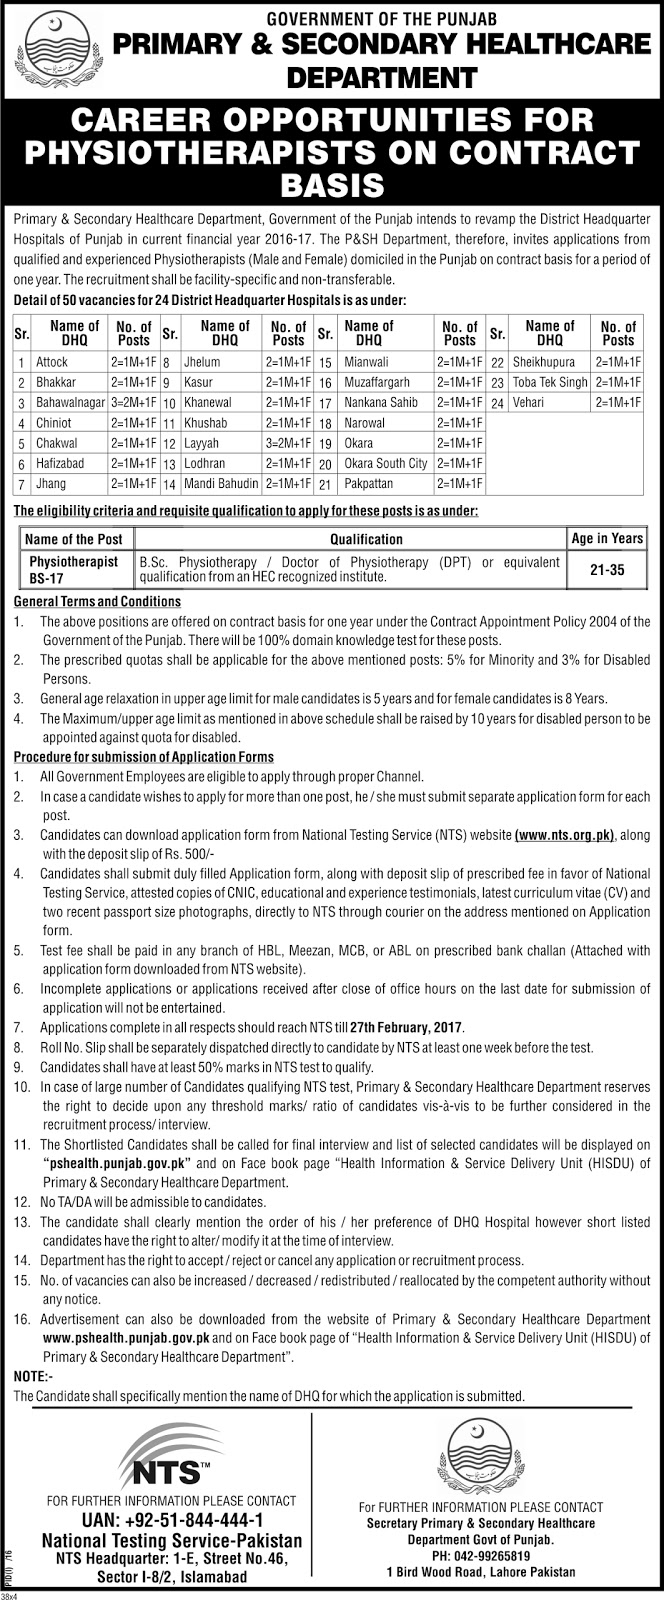 Physiotherapist Jobs in Punjab Healthcare Department